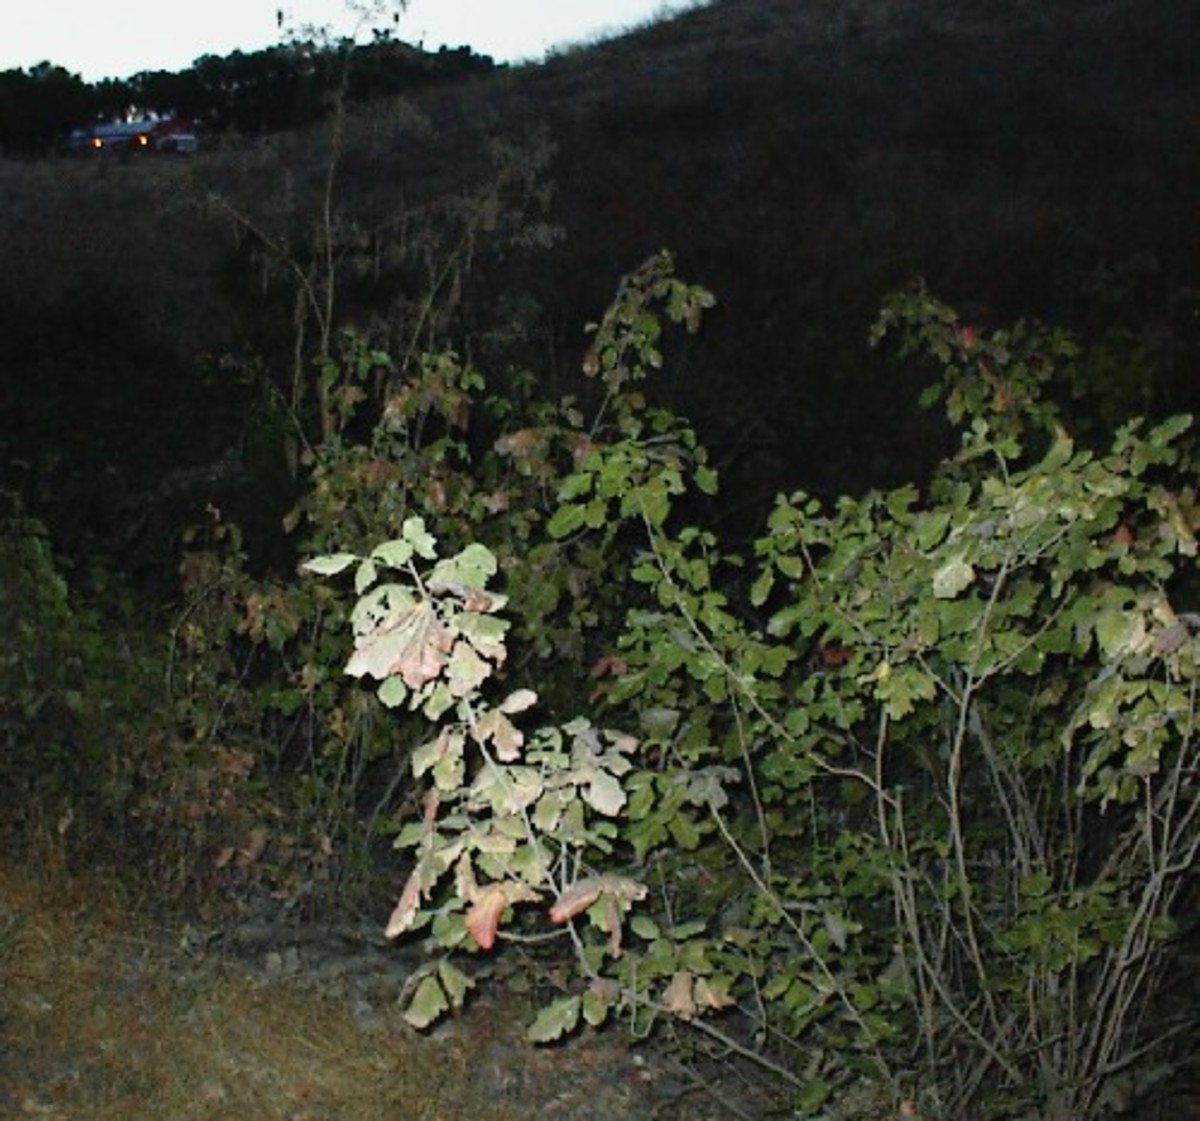 Poison Oak in July along Oak View Road in Templeton, California